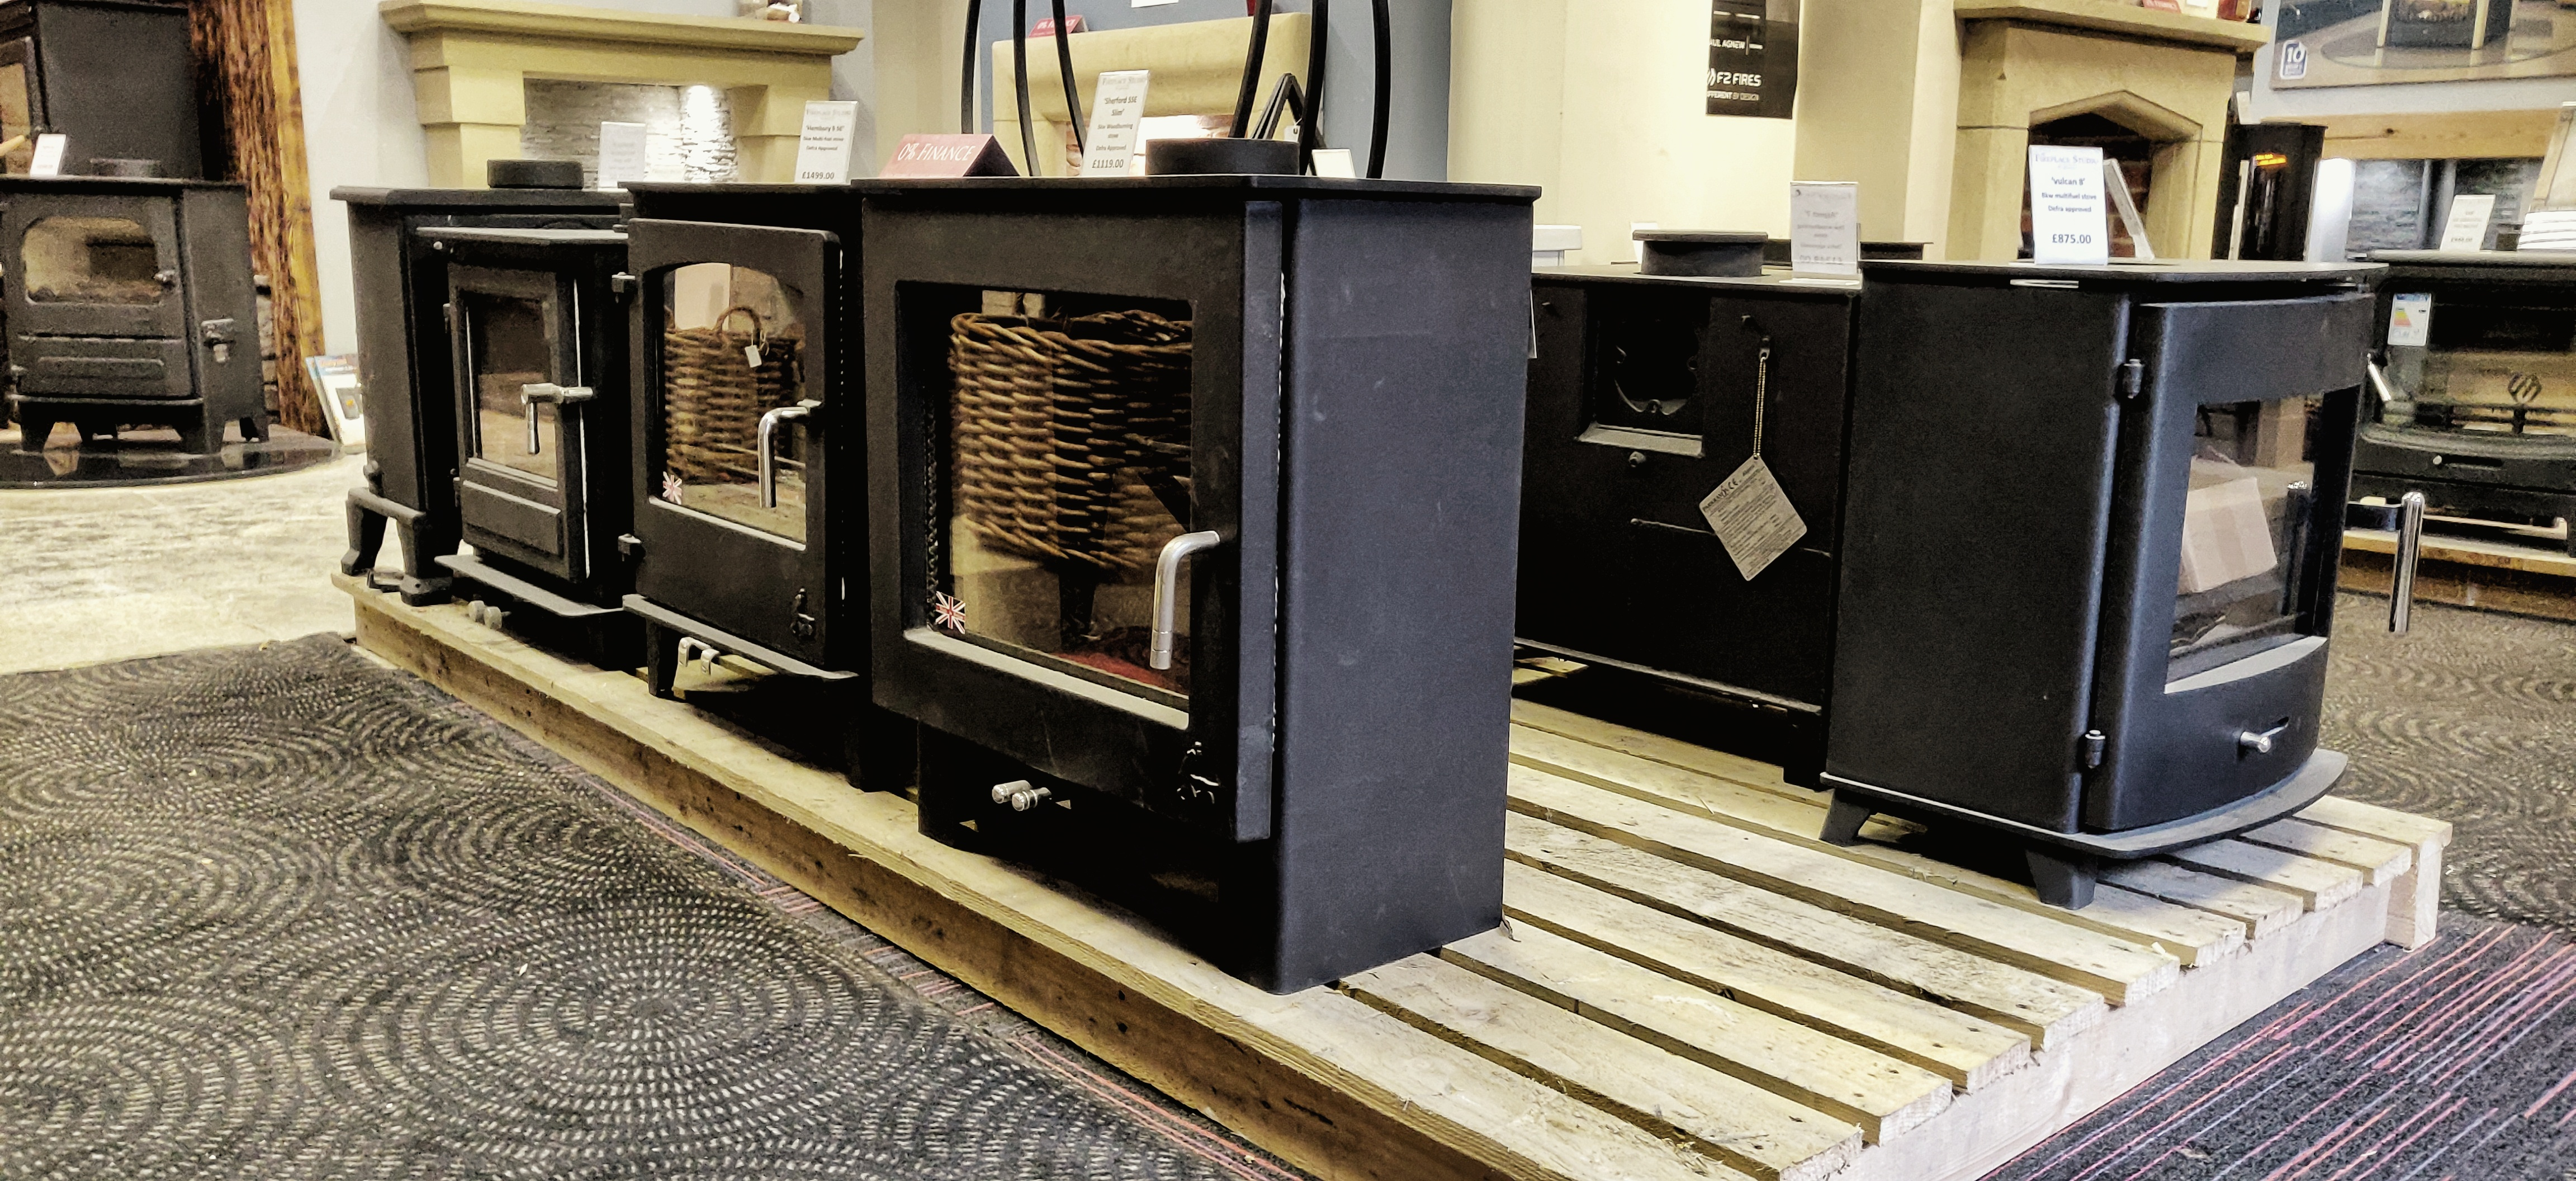 Fireplace Studio Brighouse opens new stove division at the Brighouse Stove Centre